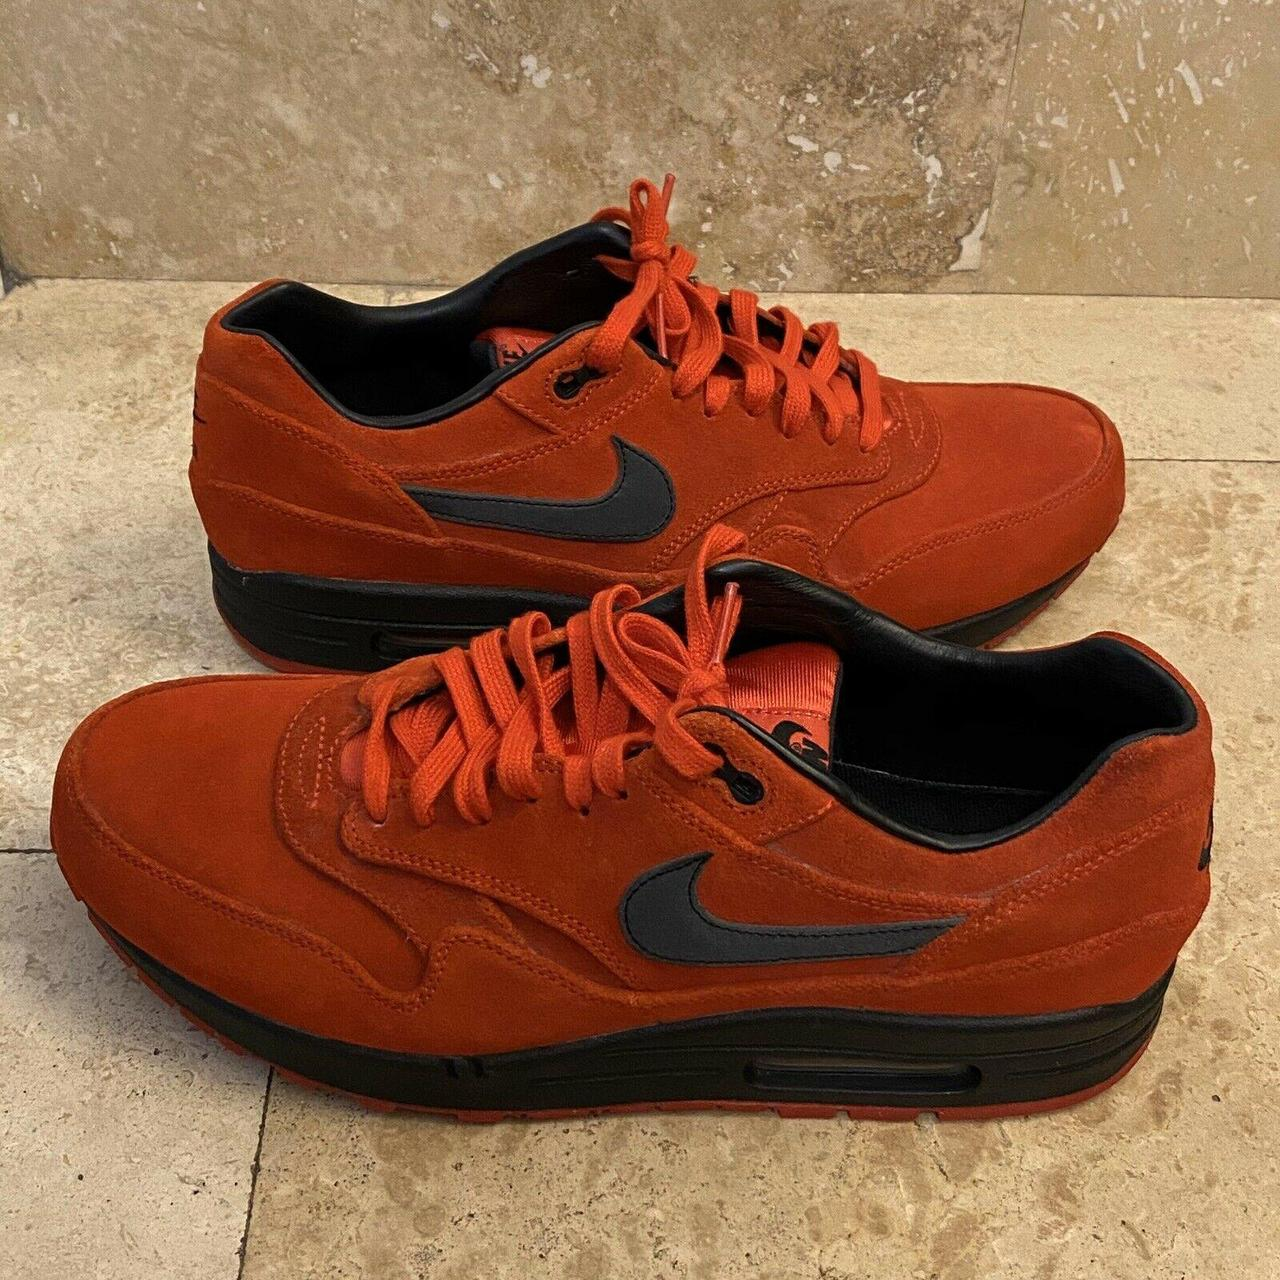 Product Image 1 - Nike Air Max Pimento Sneakers